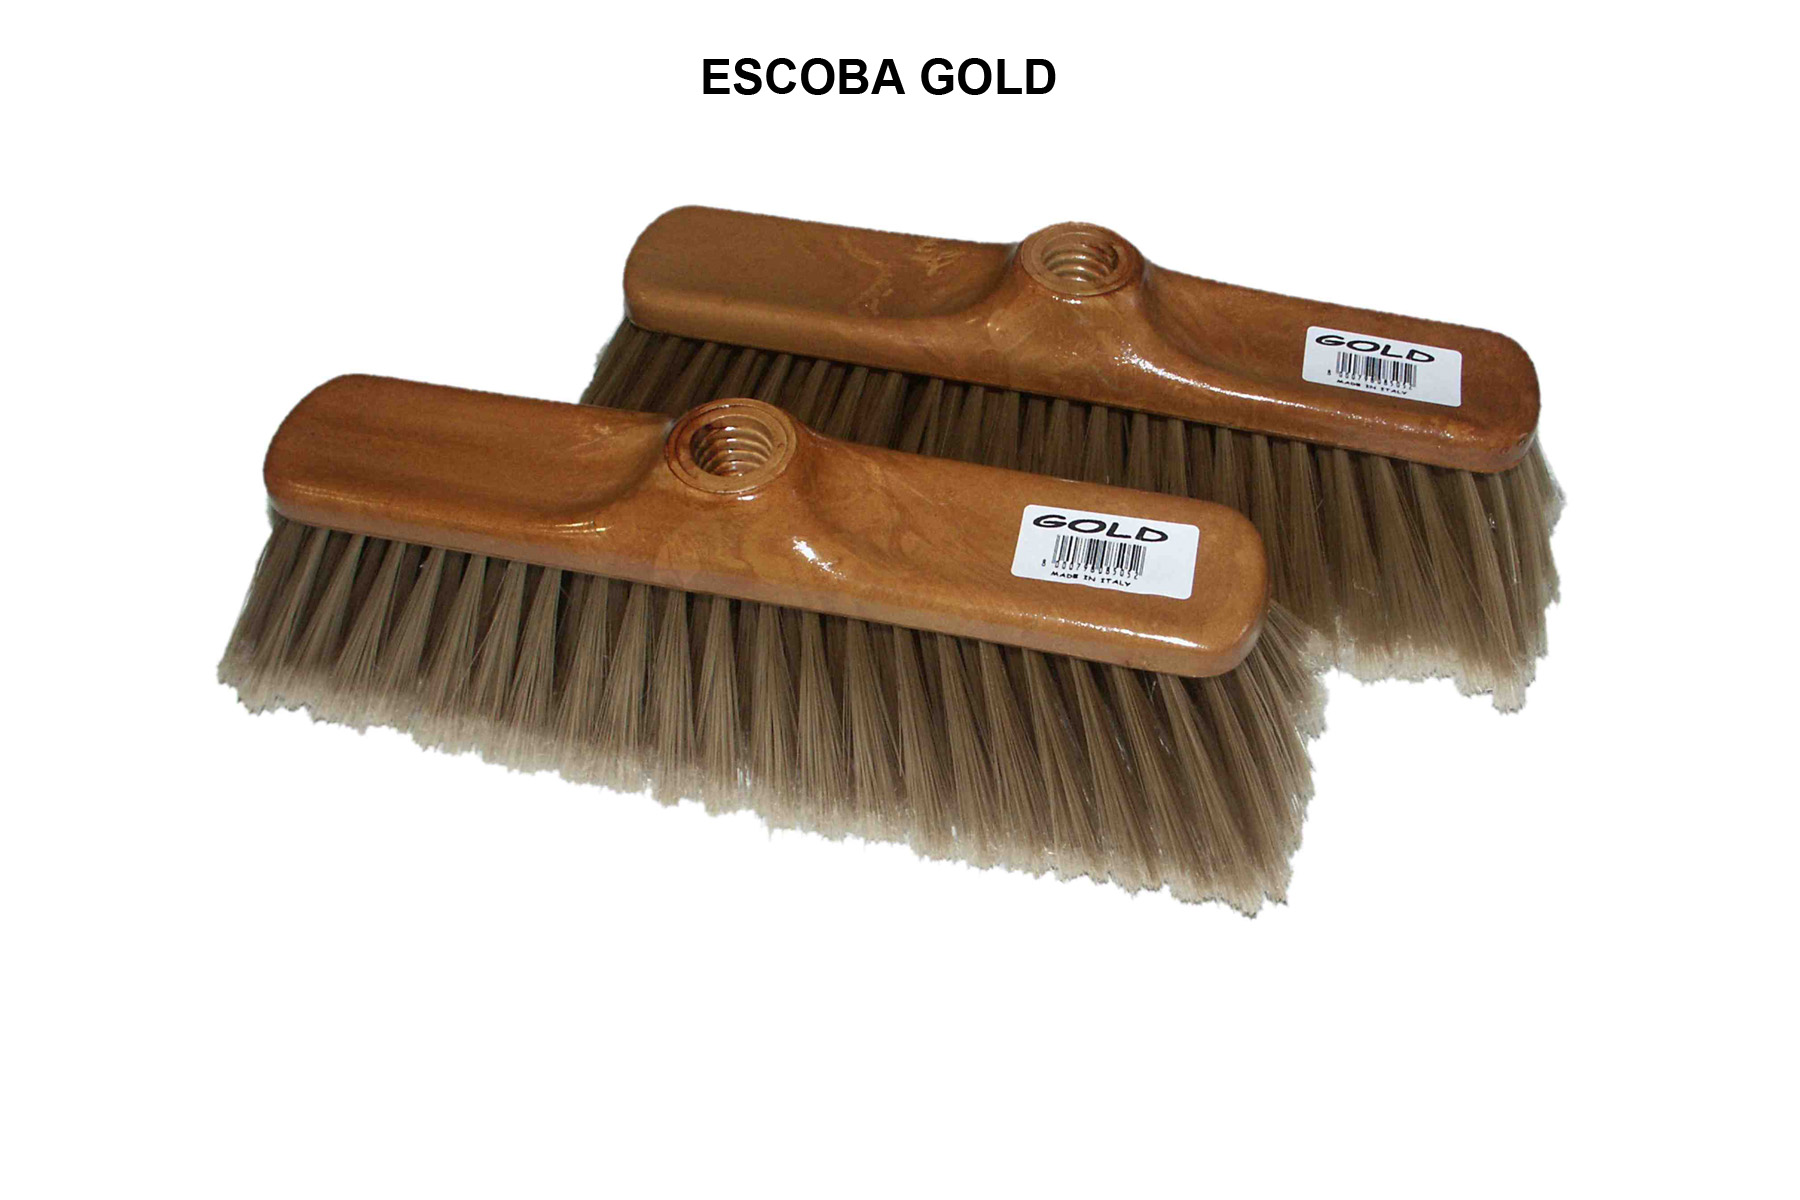 ESCOBA GOLD